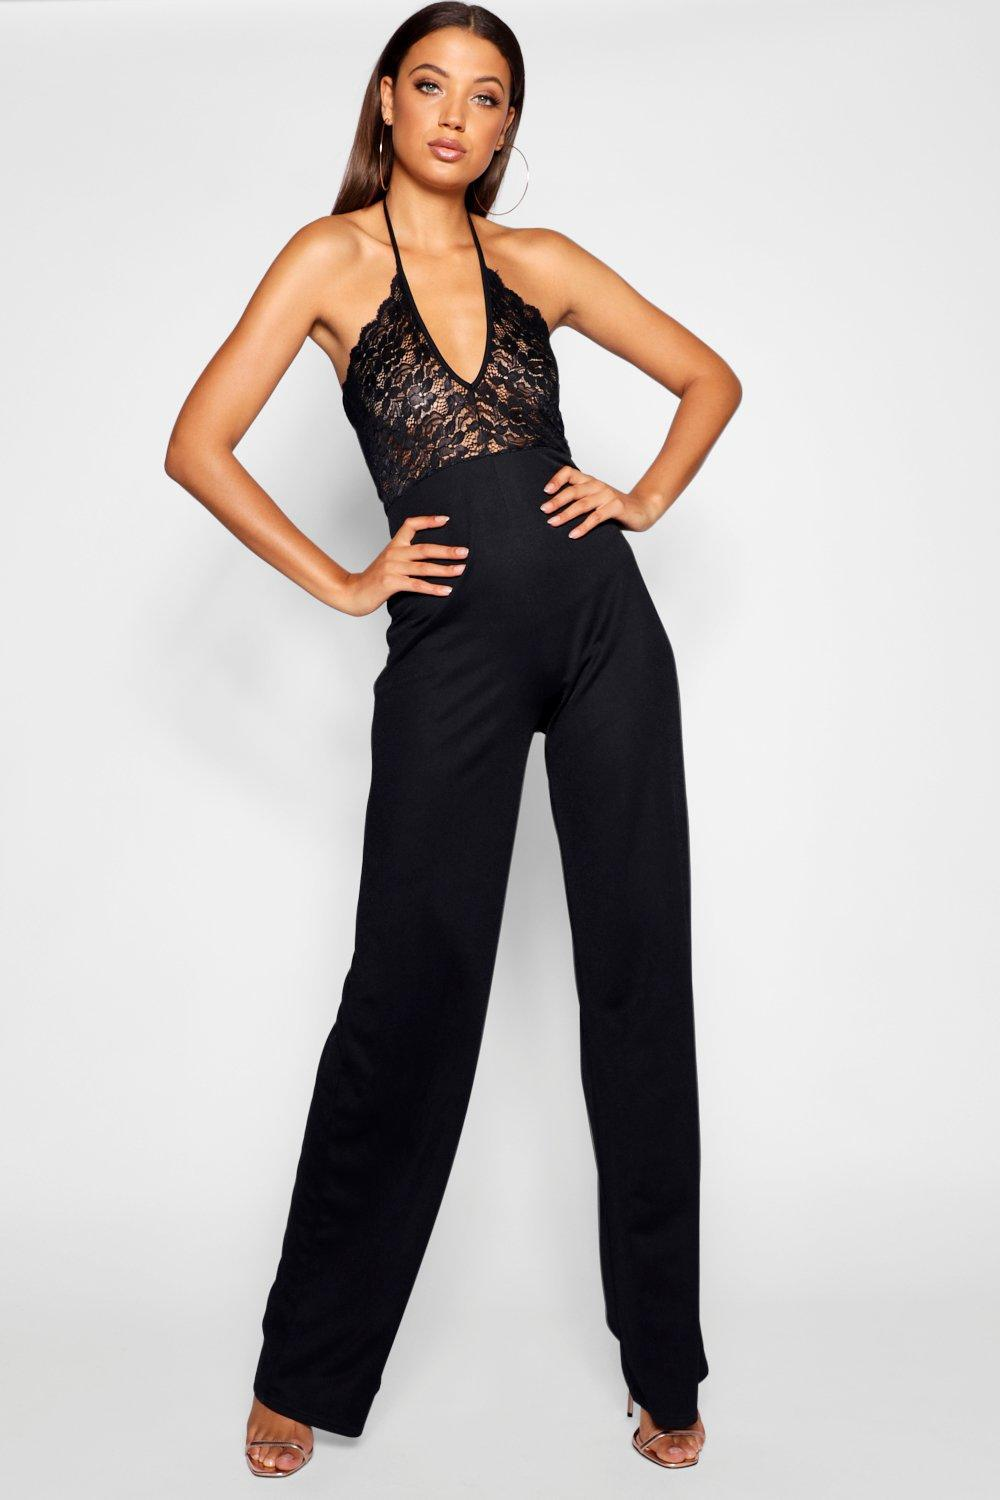 bfe7f7bf687 Boohoo Lace Plunge 2 In 1 Halter Neck Jumpsuit in Black - Lyst